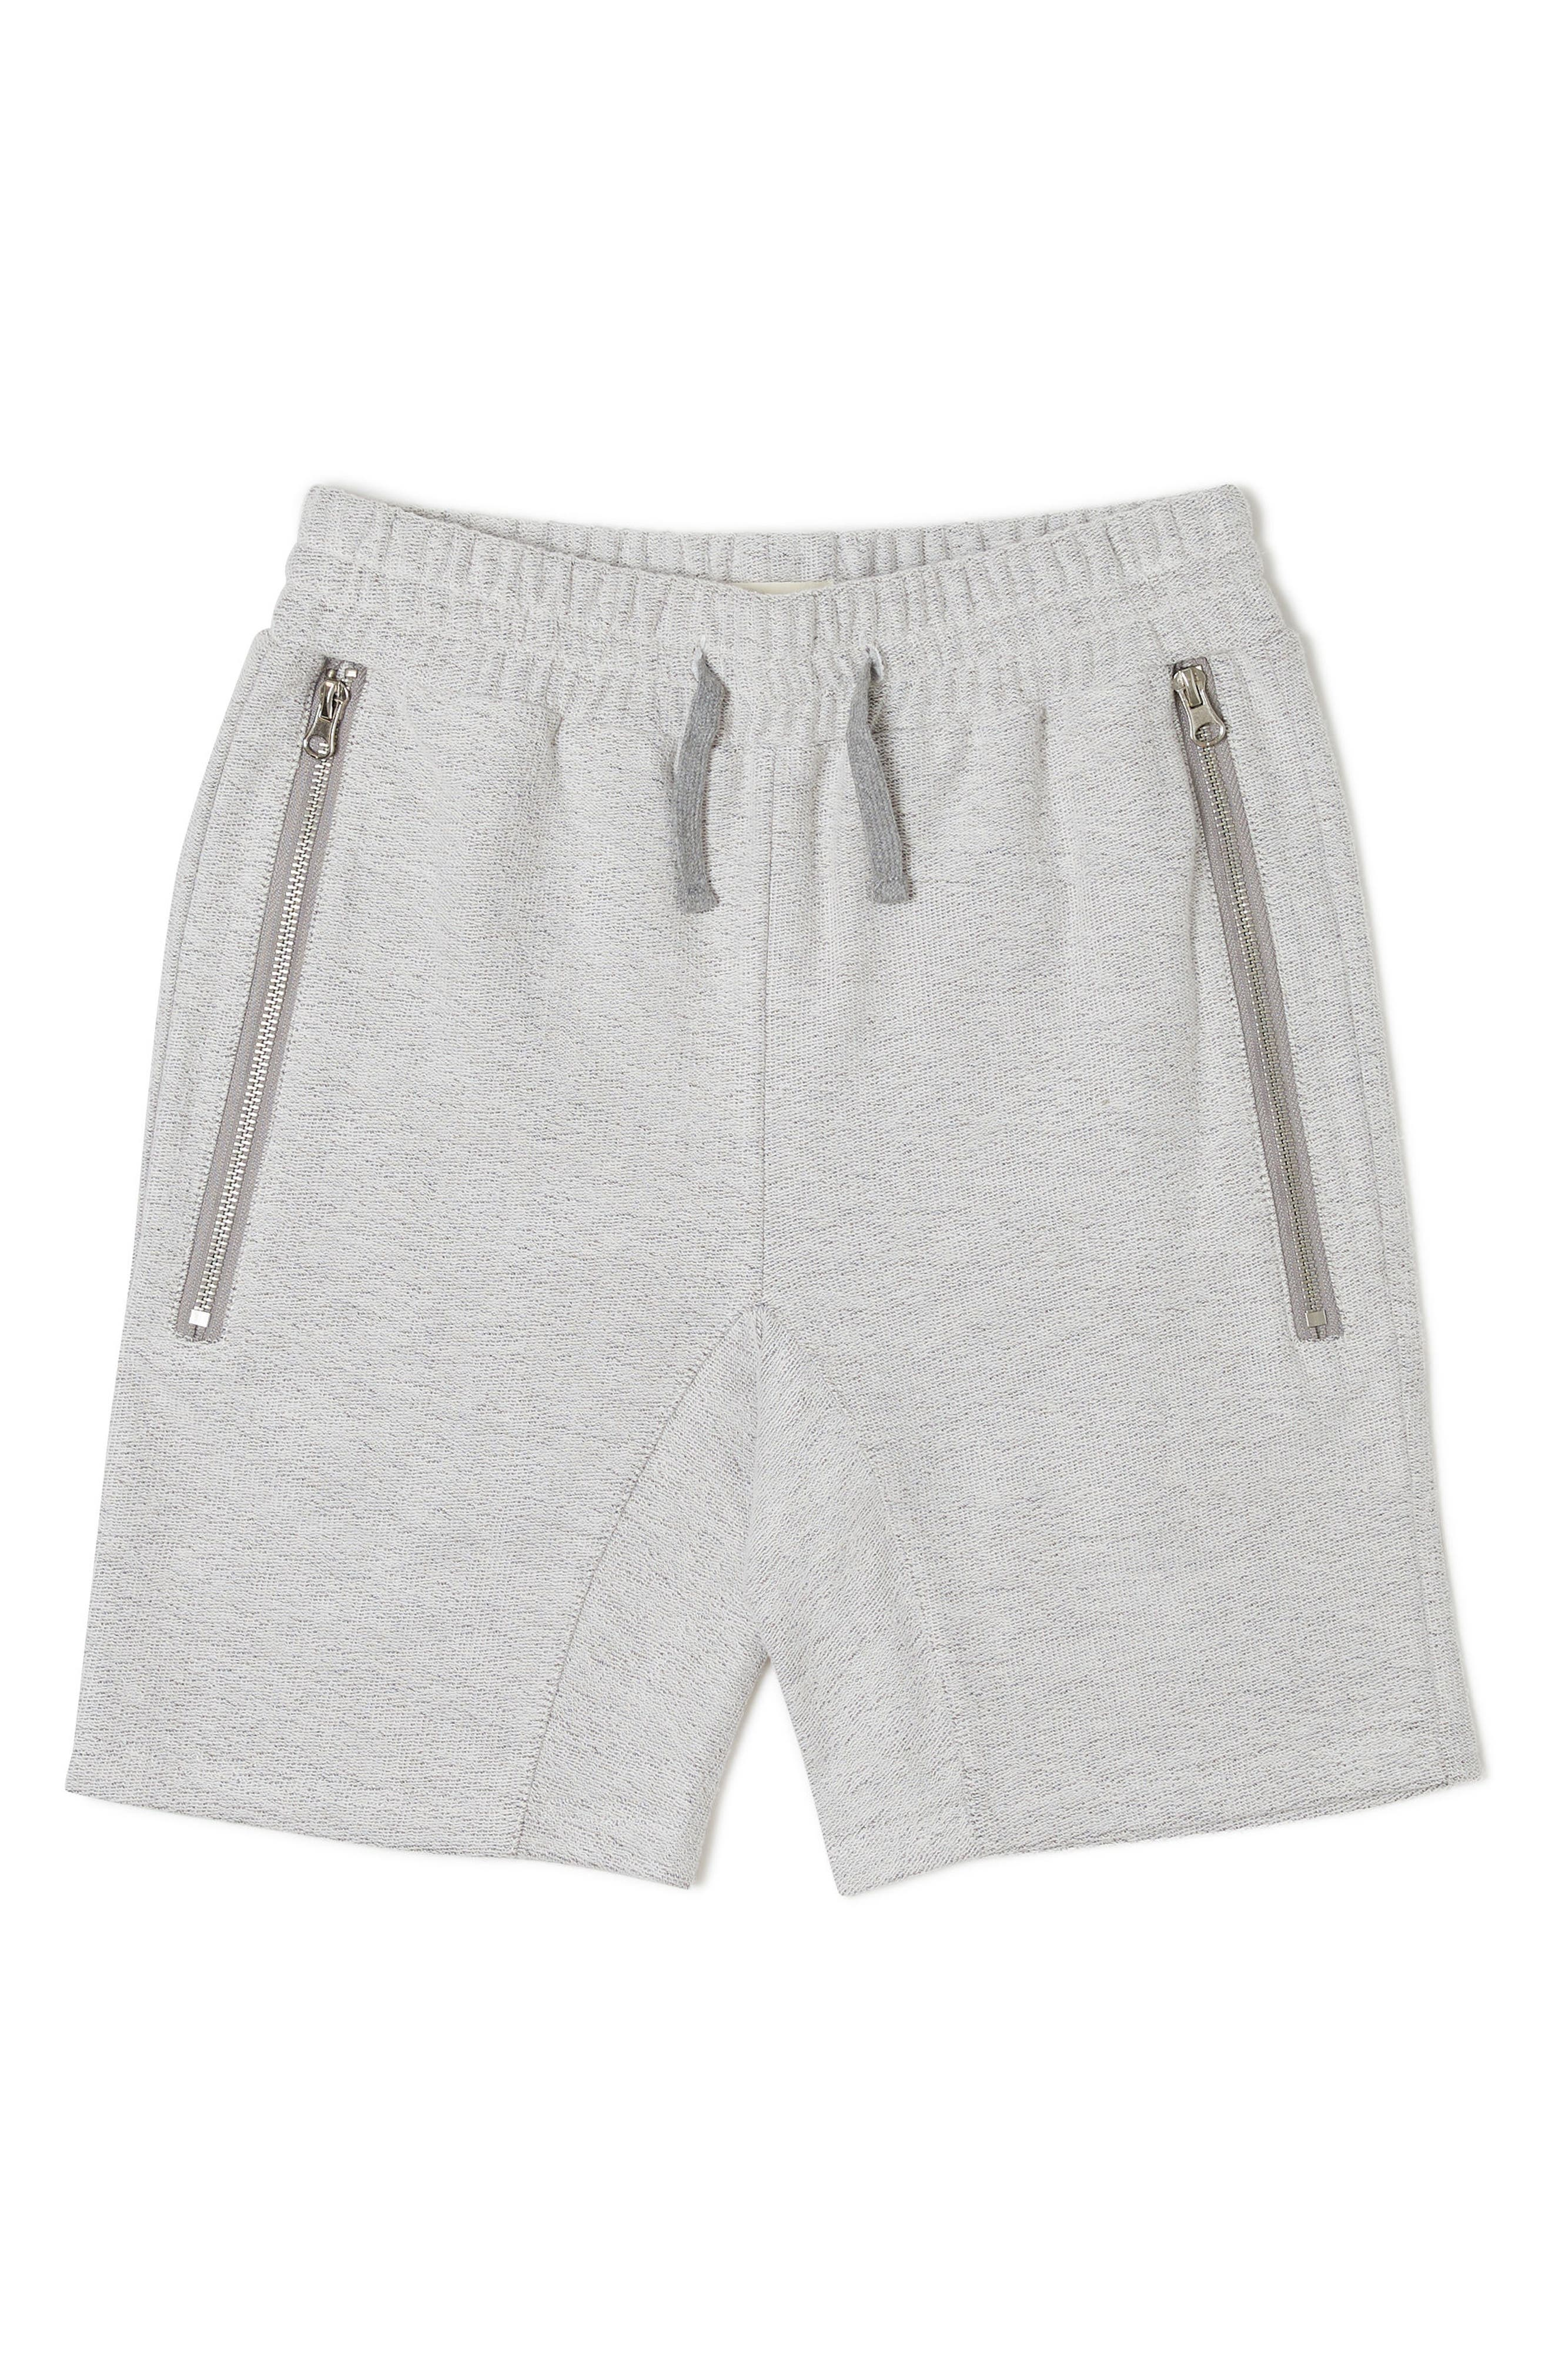 Cruise Knit Shorts,                         Main,                         color, NATURAL